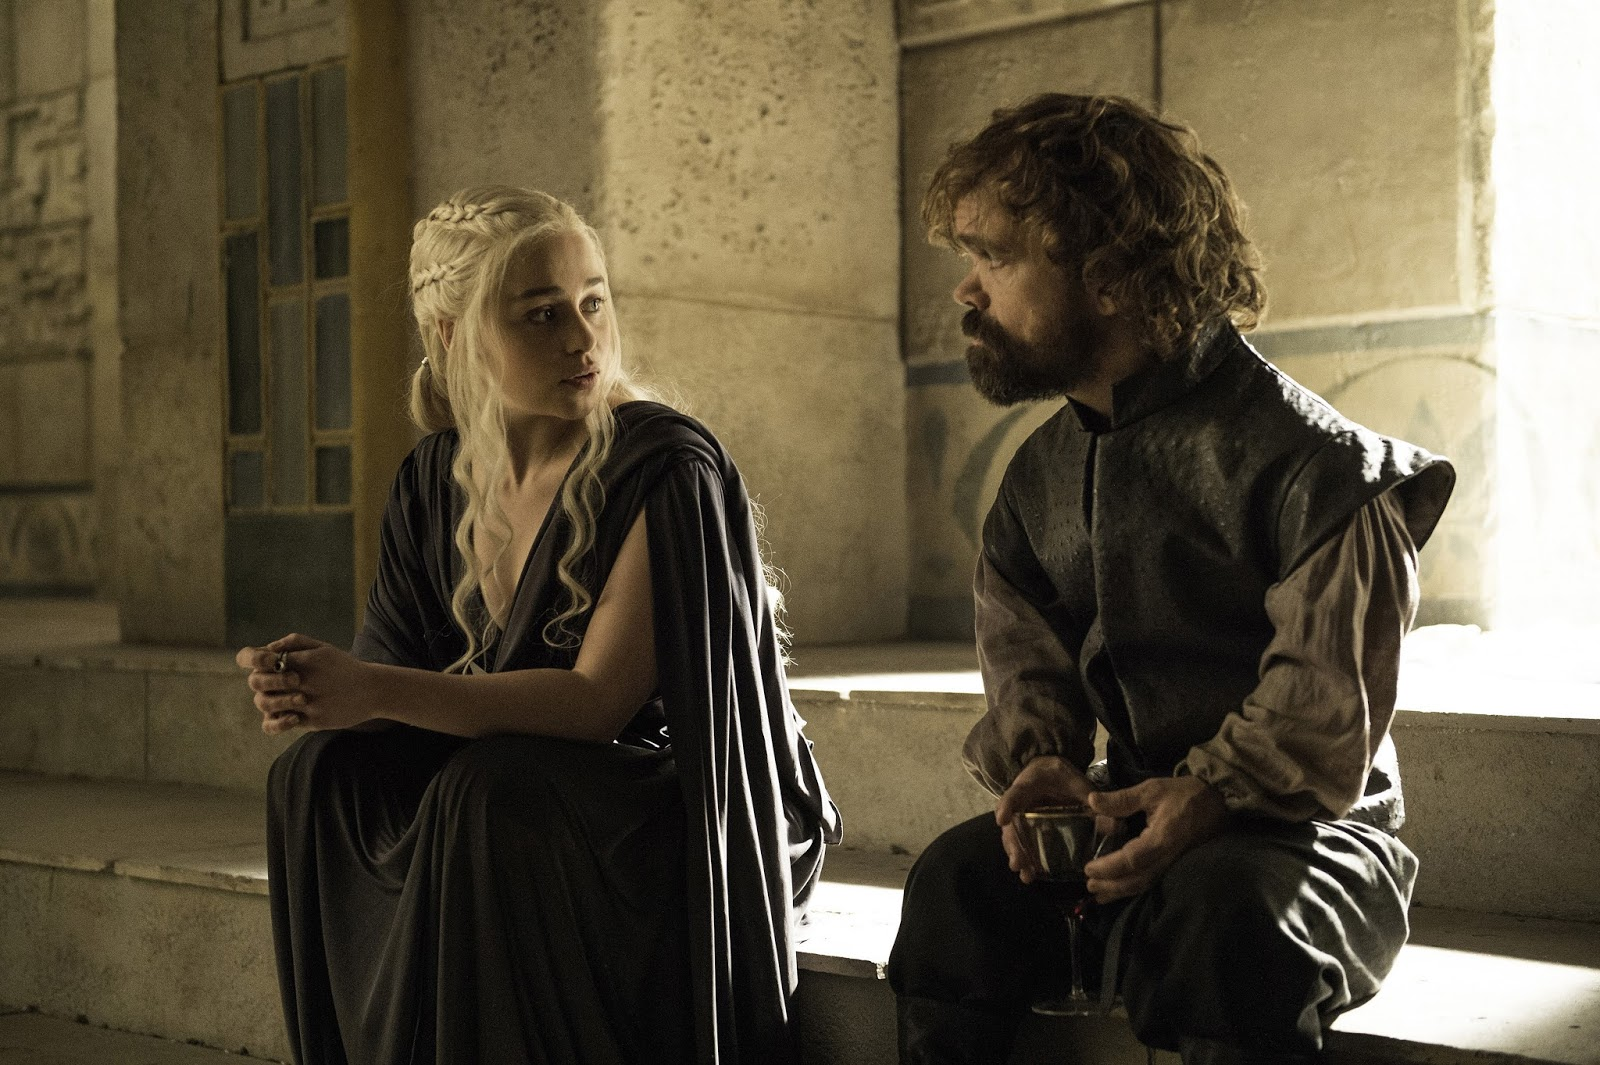 GIVEAWAY: Game of Thrones Season 6 on Digital HD